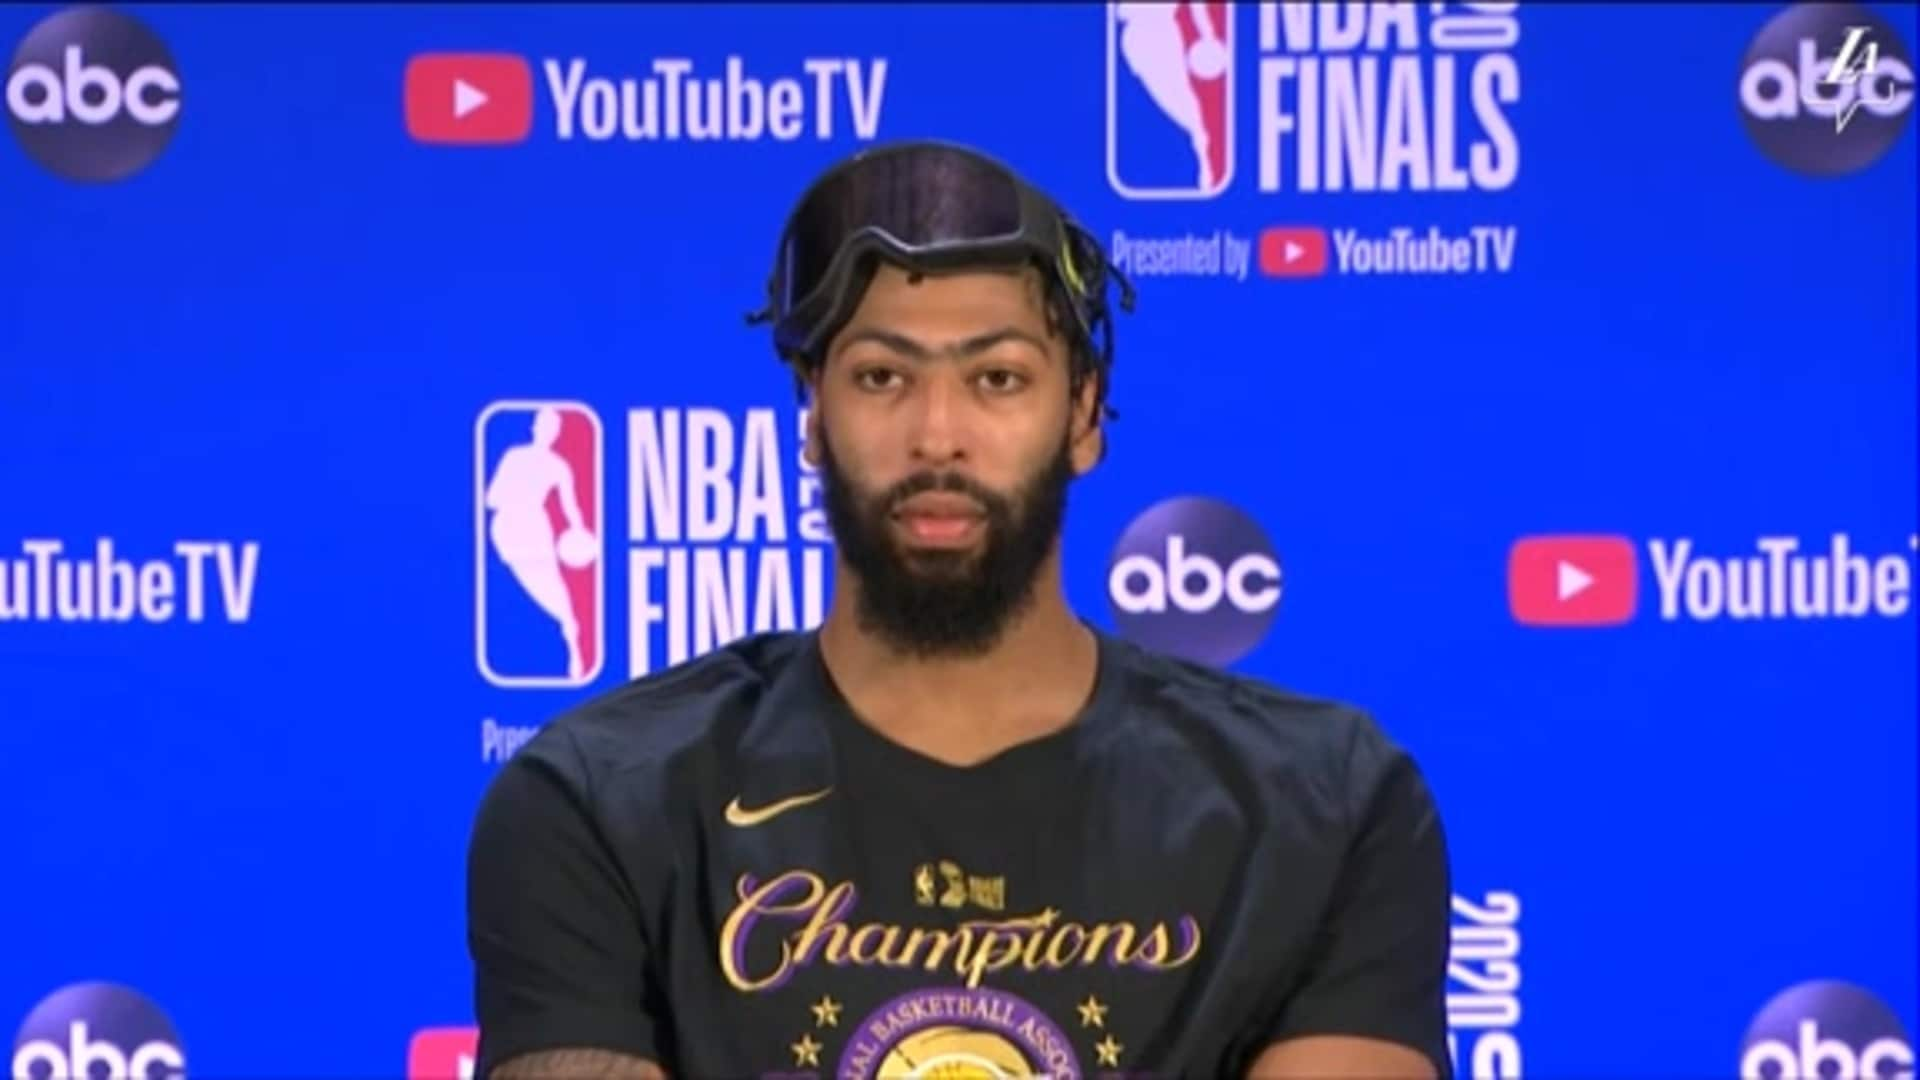 Championship Press Conference: Anthony Davis | Lakers